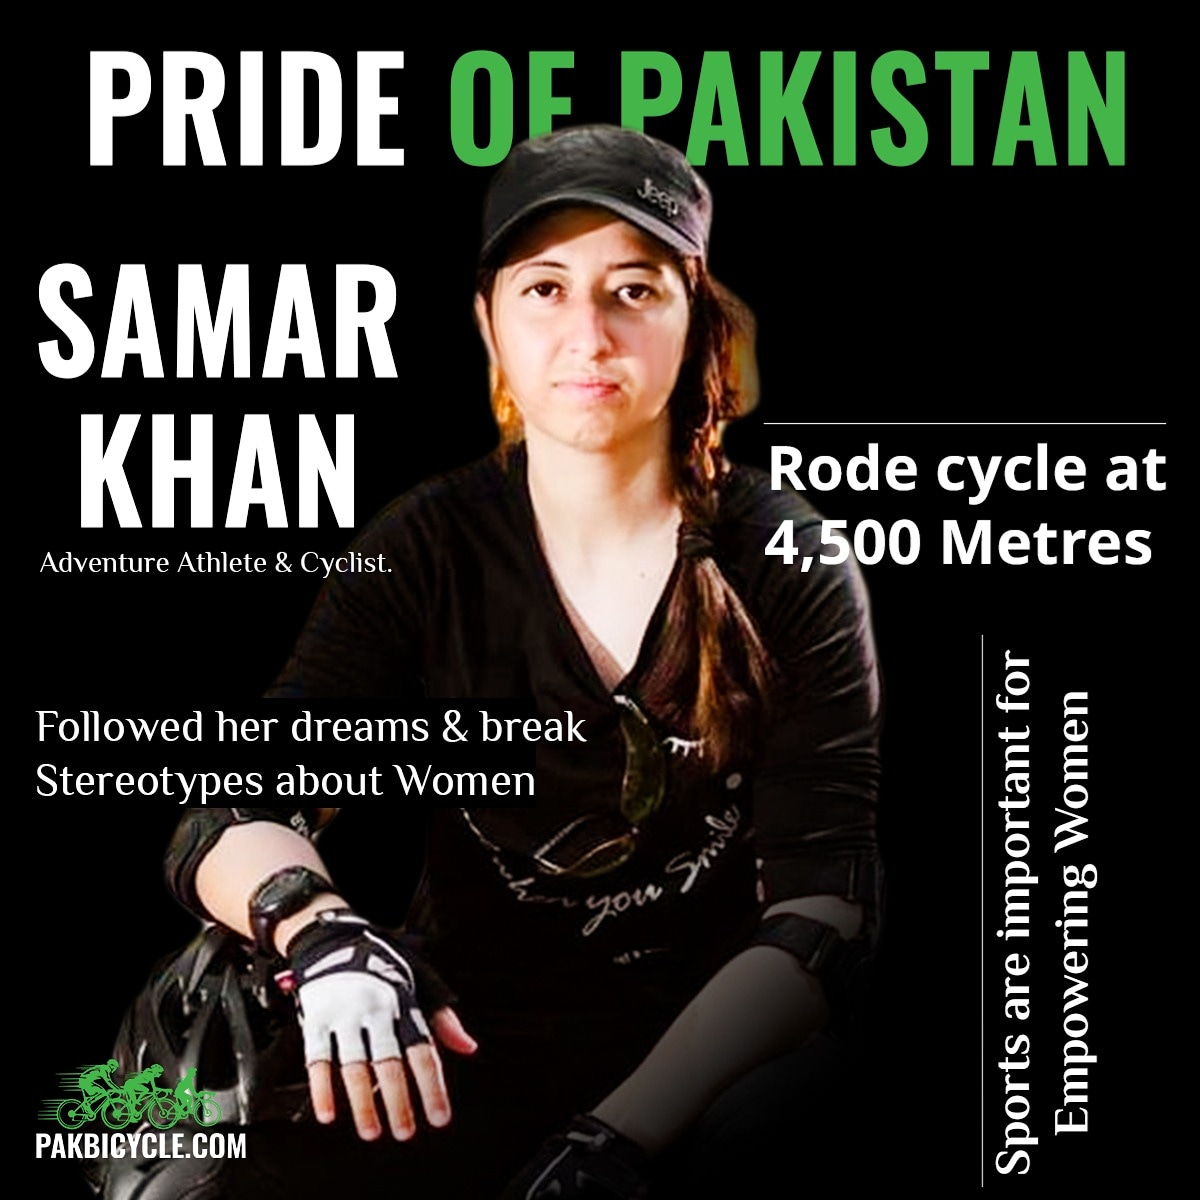 A Pakistani cyclist who became the first woman in the world to ride cycle at 4,500 meters Biafo Glacier in the #Karakoram Mountains of #GilgitBaltistan  and made whole nation proud. we wish you good luck for your upcoming adventures.  #Cycling #Fun #Family #pakbicycle #SamarKhan https://t.co/rSzP16eHTp